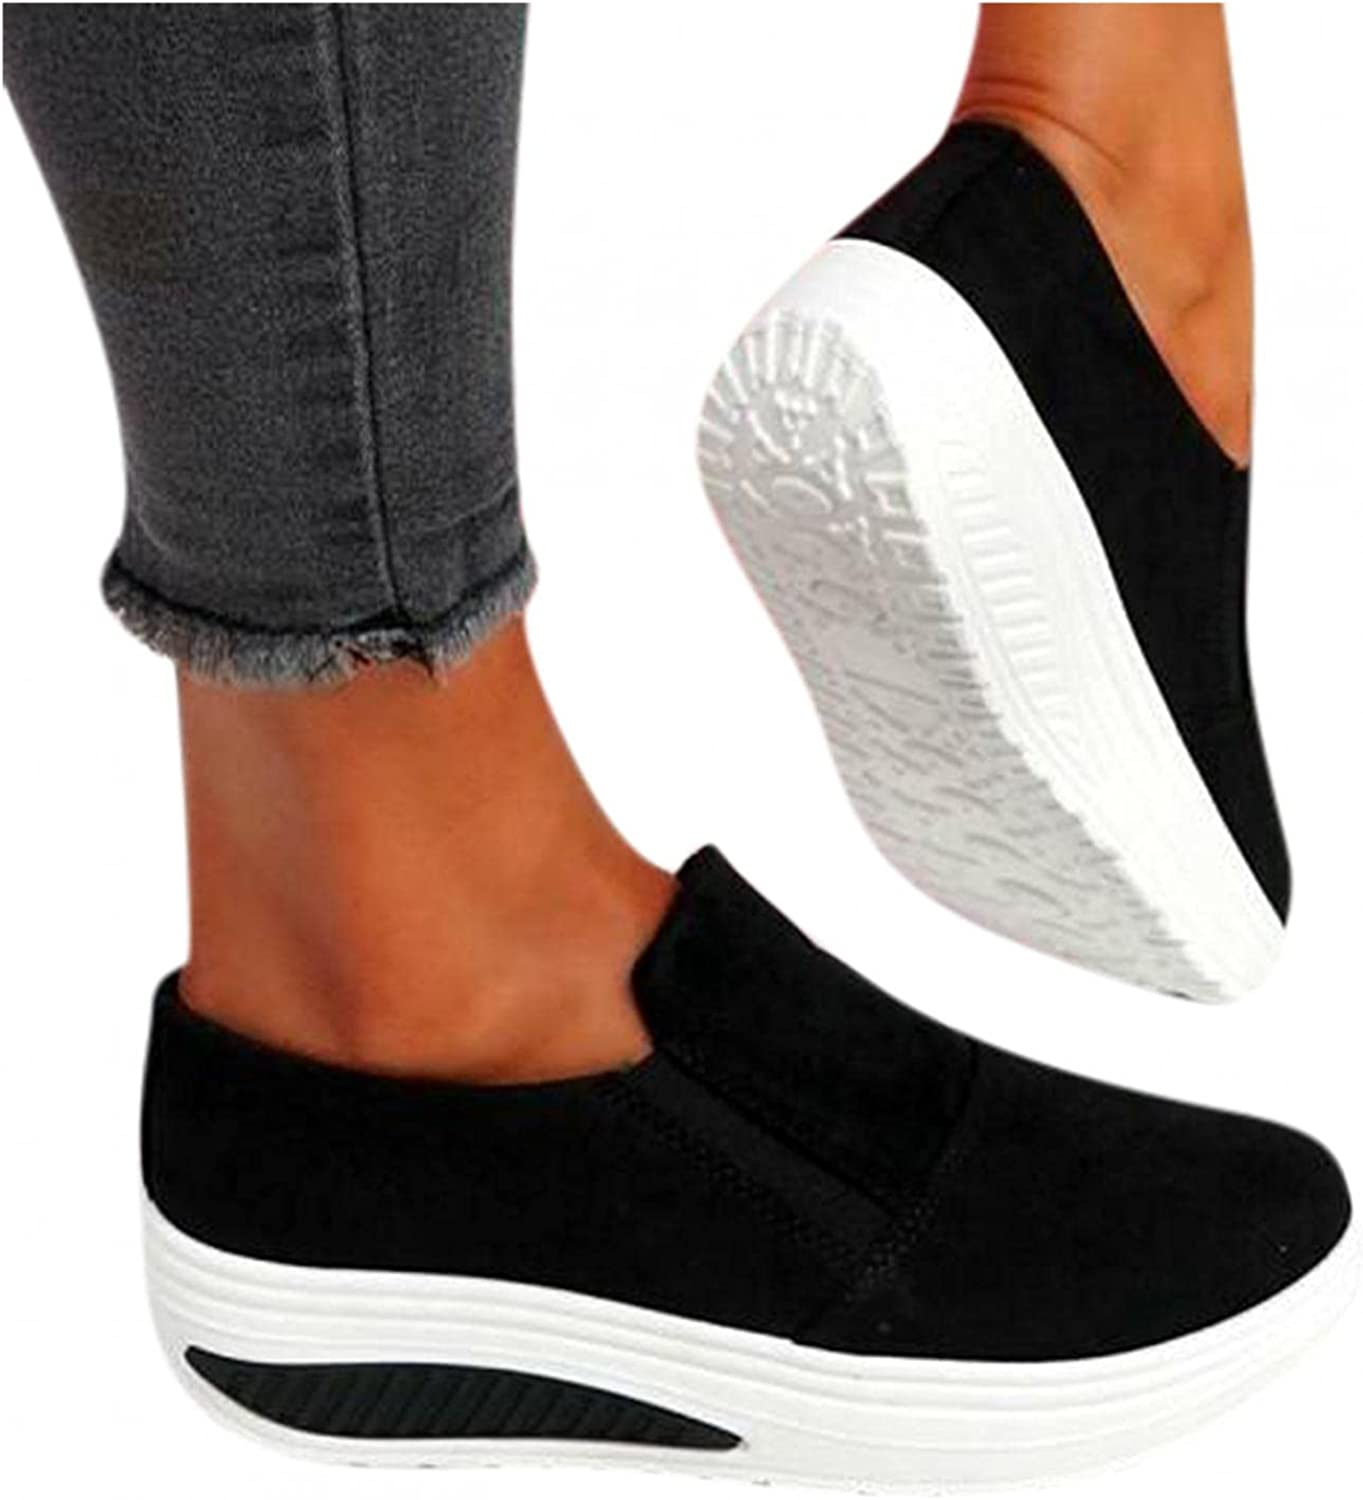 Hbeylia Platform Slip On Loafers Fashion Sneakers For Women Comfortable Chunky Bottom Heels Low Top Walking Shoes Breathable Non Slip Work Nurse Sport Shoes For Ladies